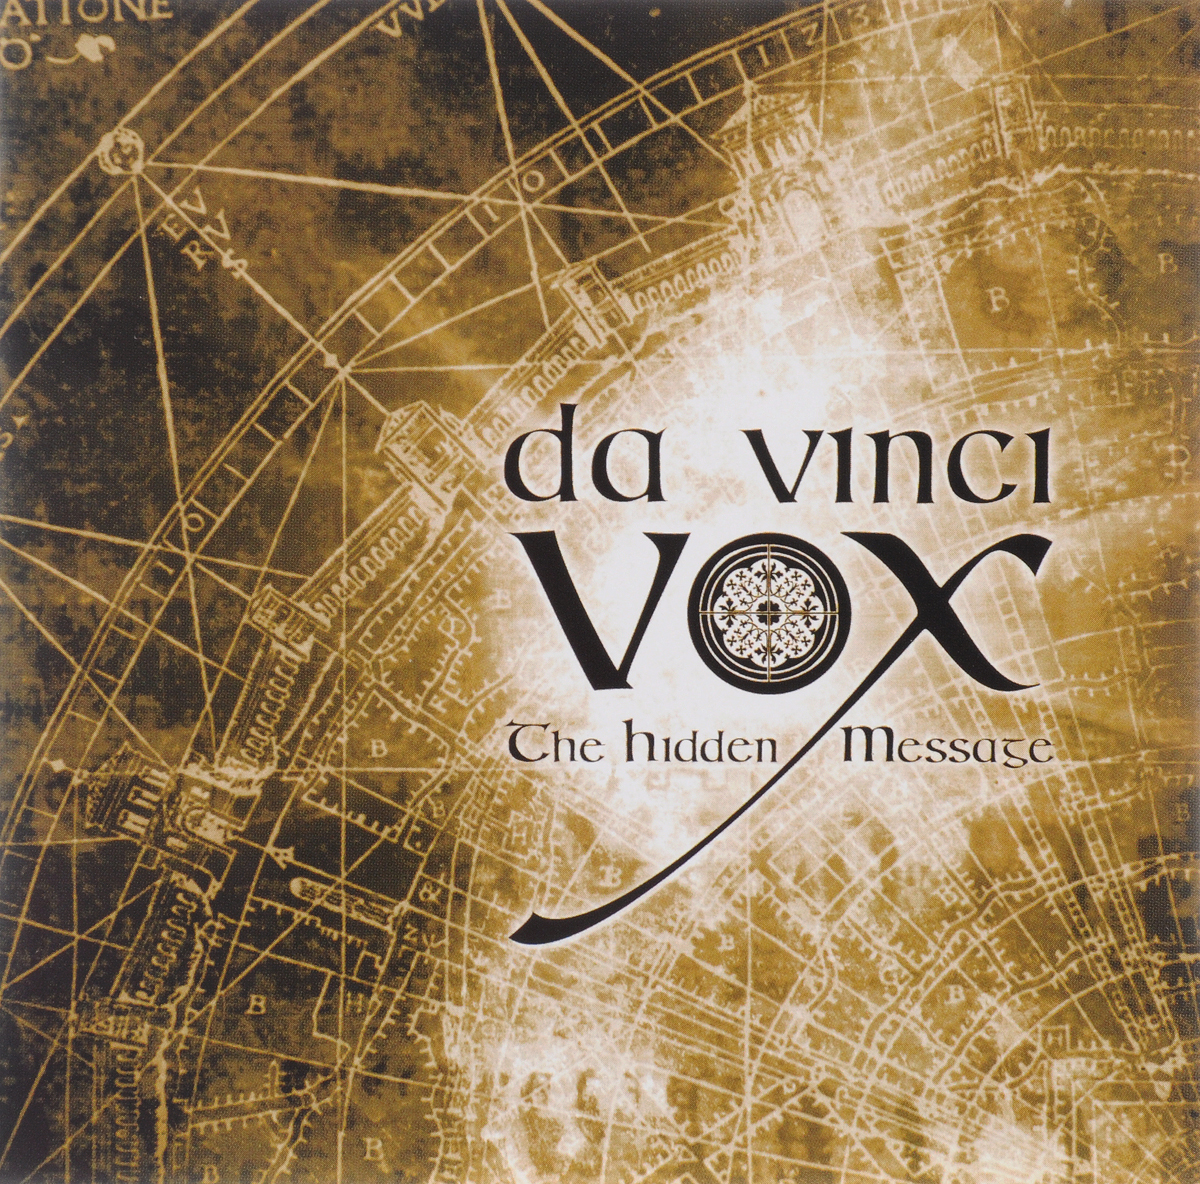 Da Vinci Vox DA VINCI VOX. THE HIDDEN MESSAGE